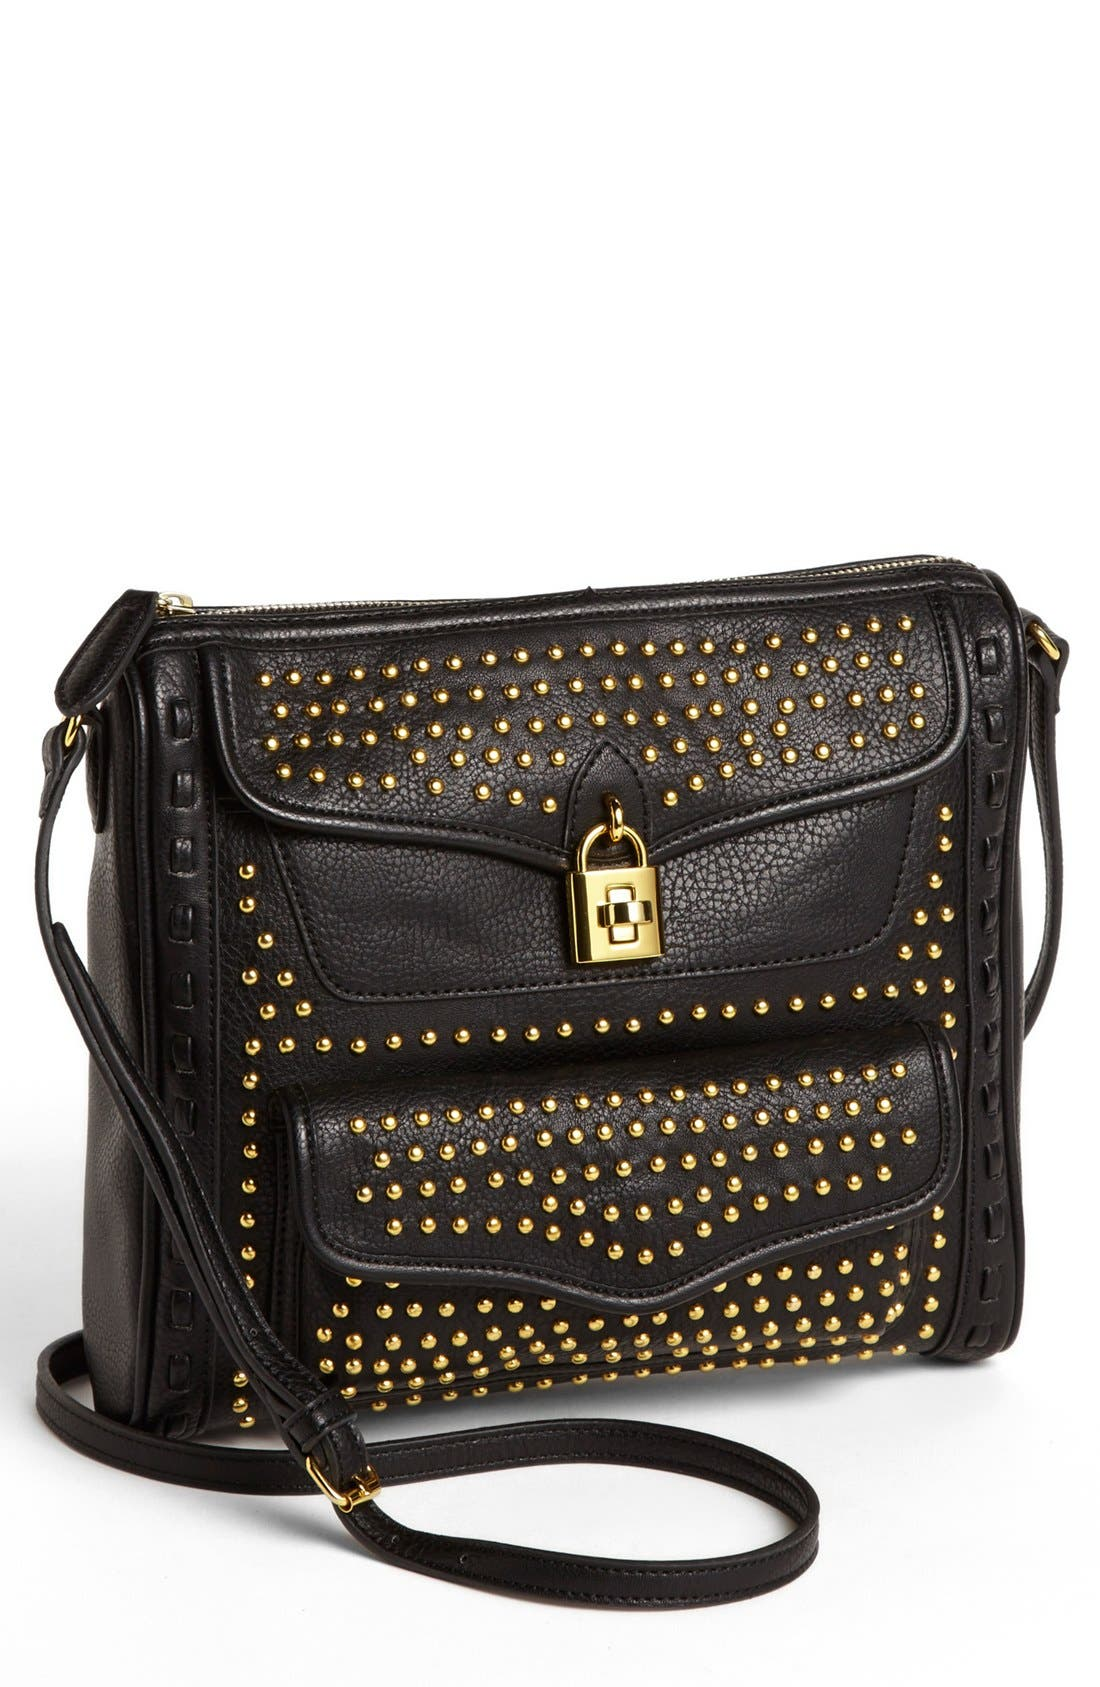 Alternate Image 1 Selected - Jessica Simpson 'Madison' Pebble Studded Crossbody Bag